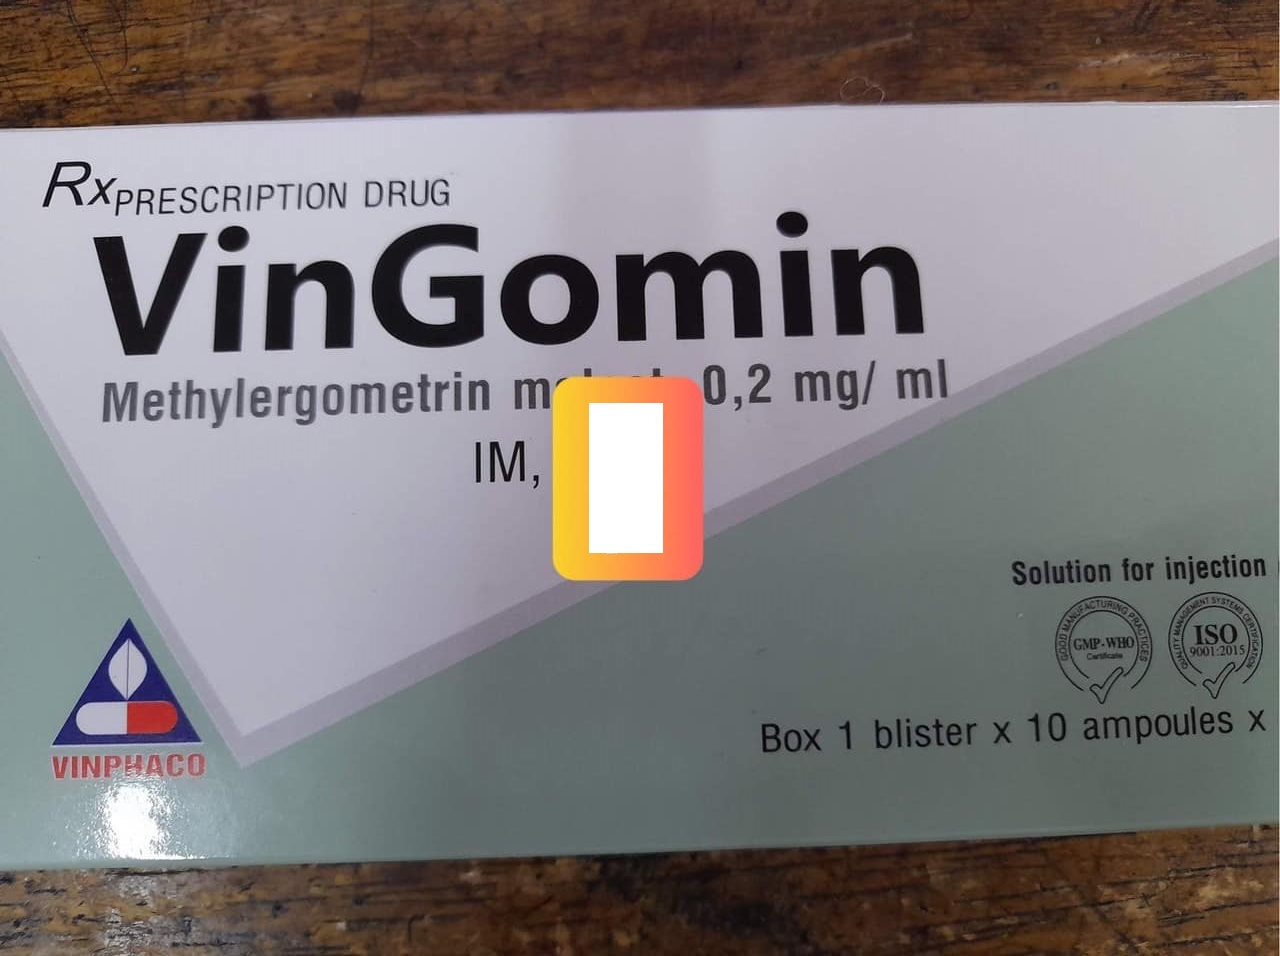 Vingomin 0.2mg/ml